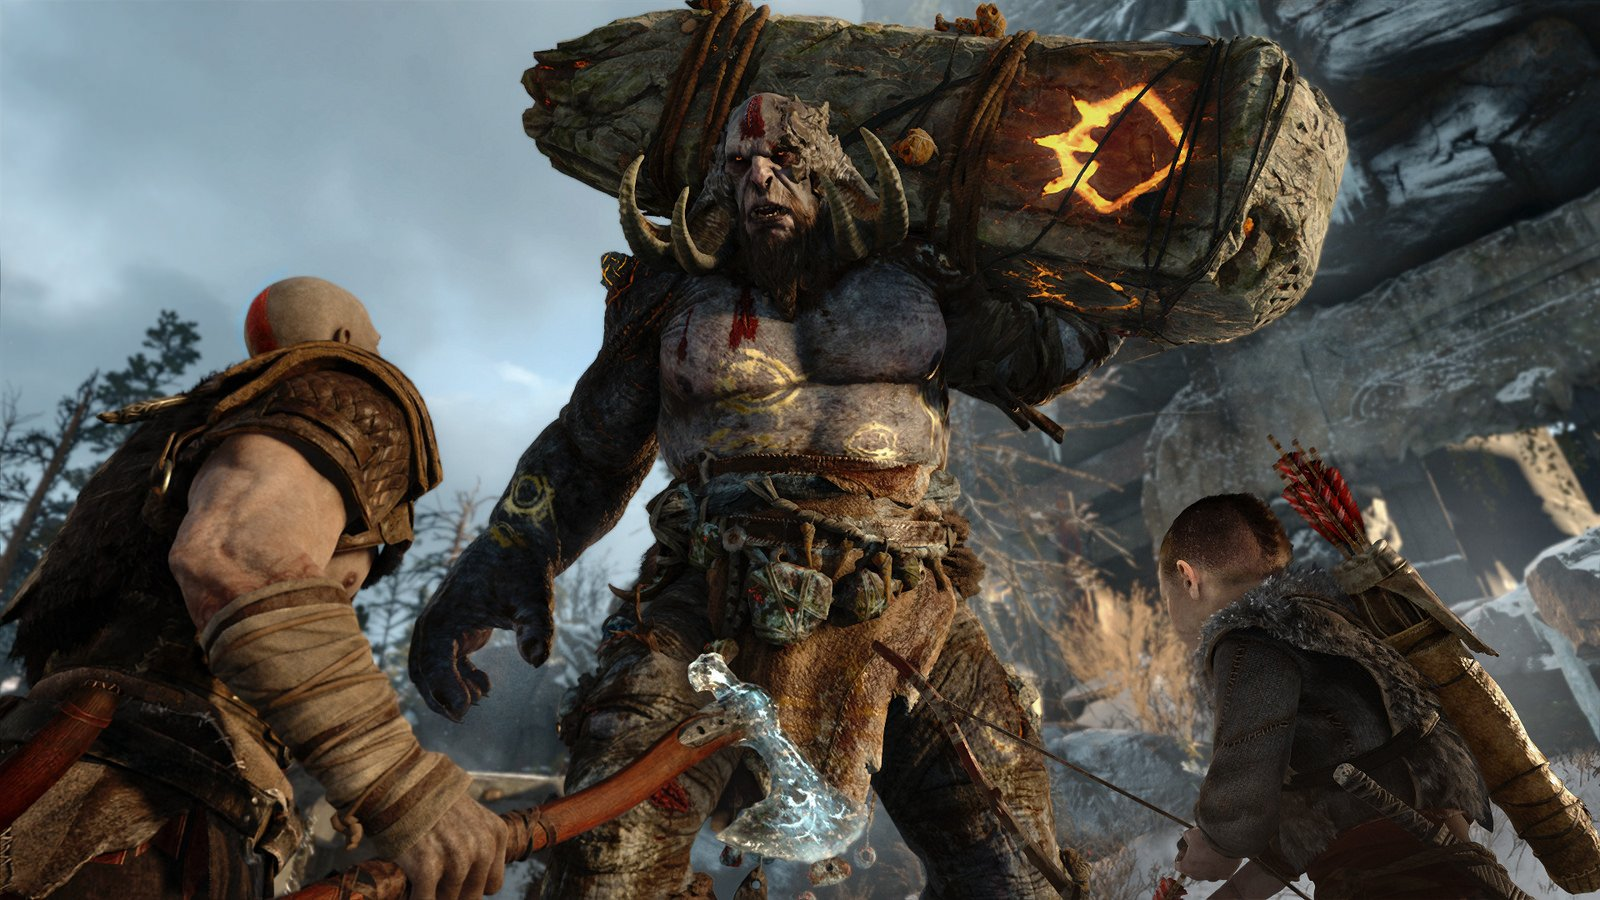 God Of War PS4 Not Considered Reboot, Takes Place After God Of War 3